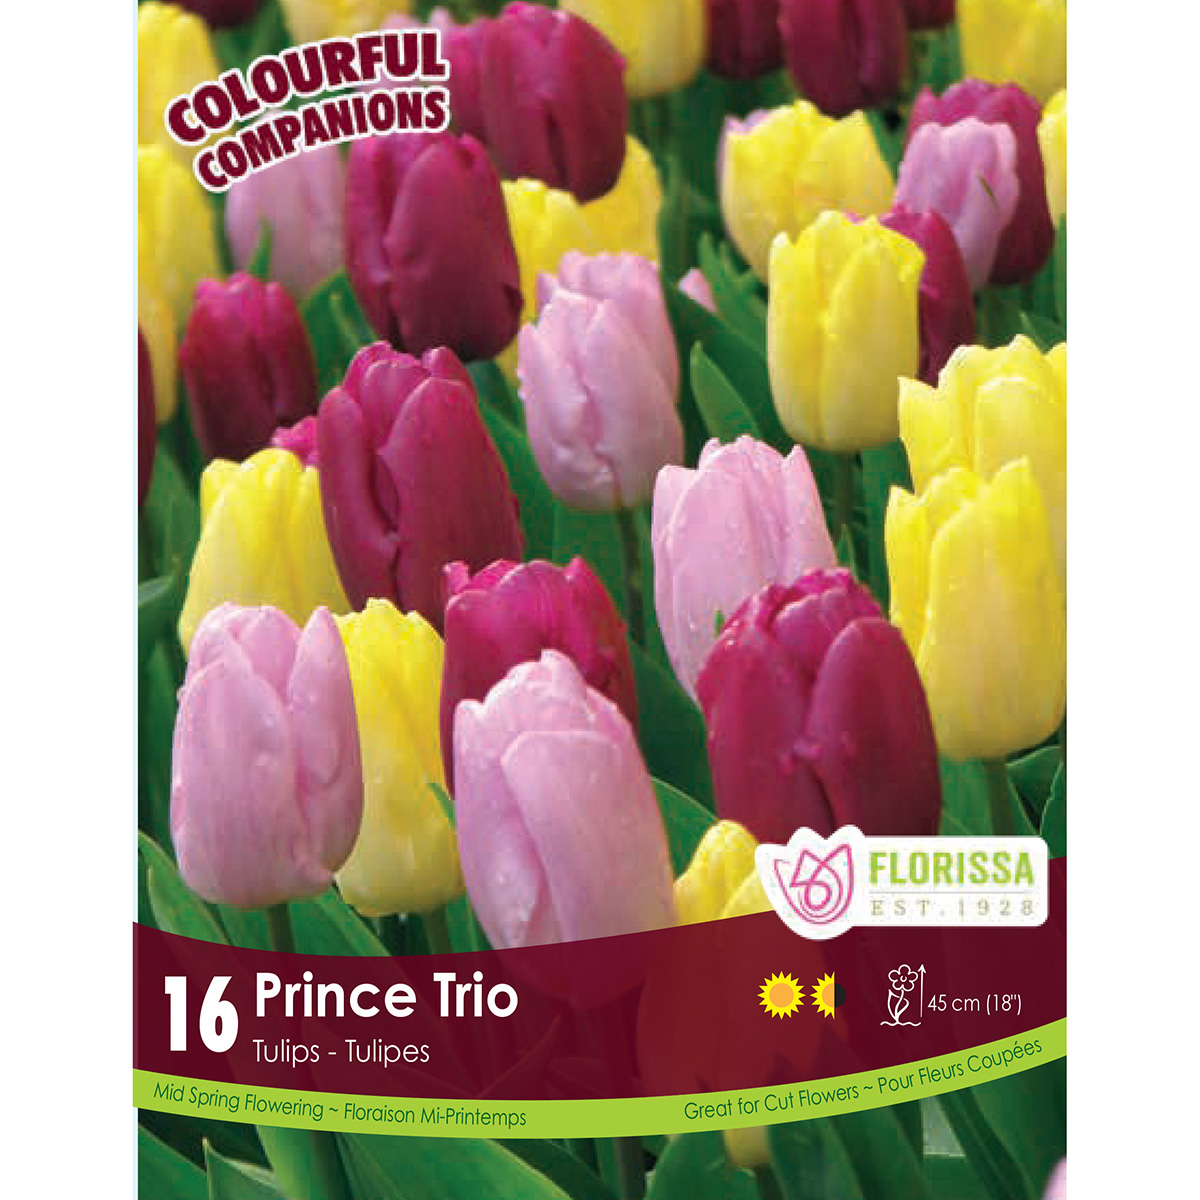 Colourful Companions Tulipa 'Prince Trio' Bulbs